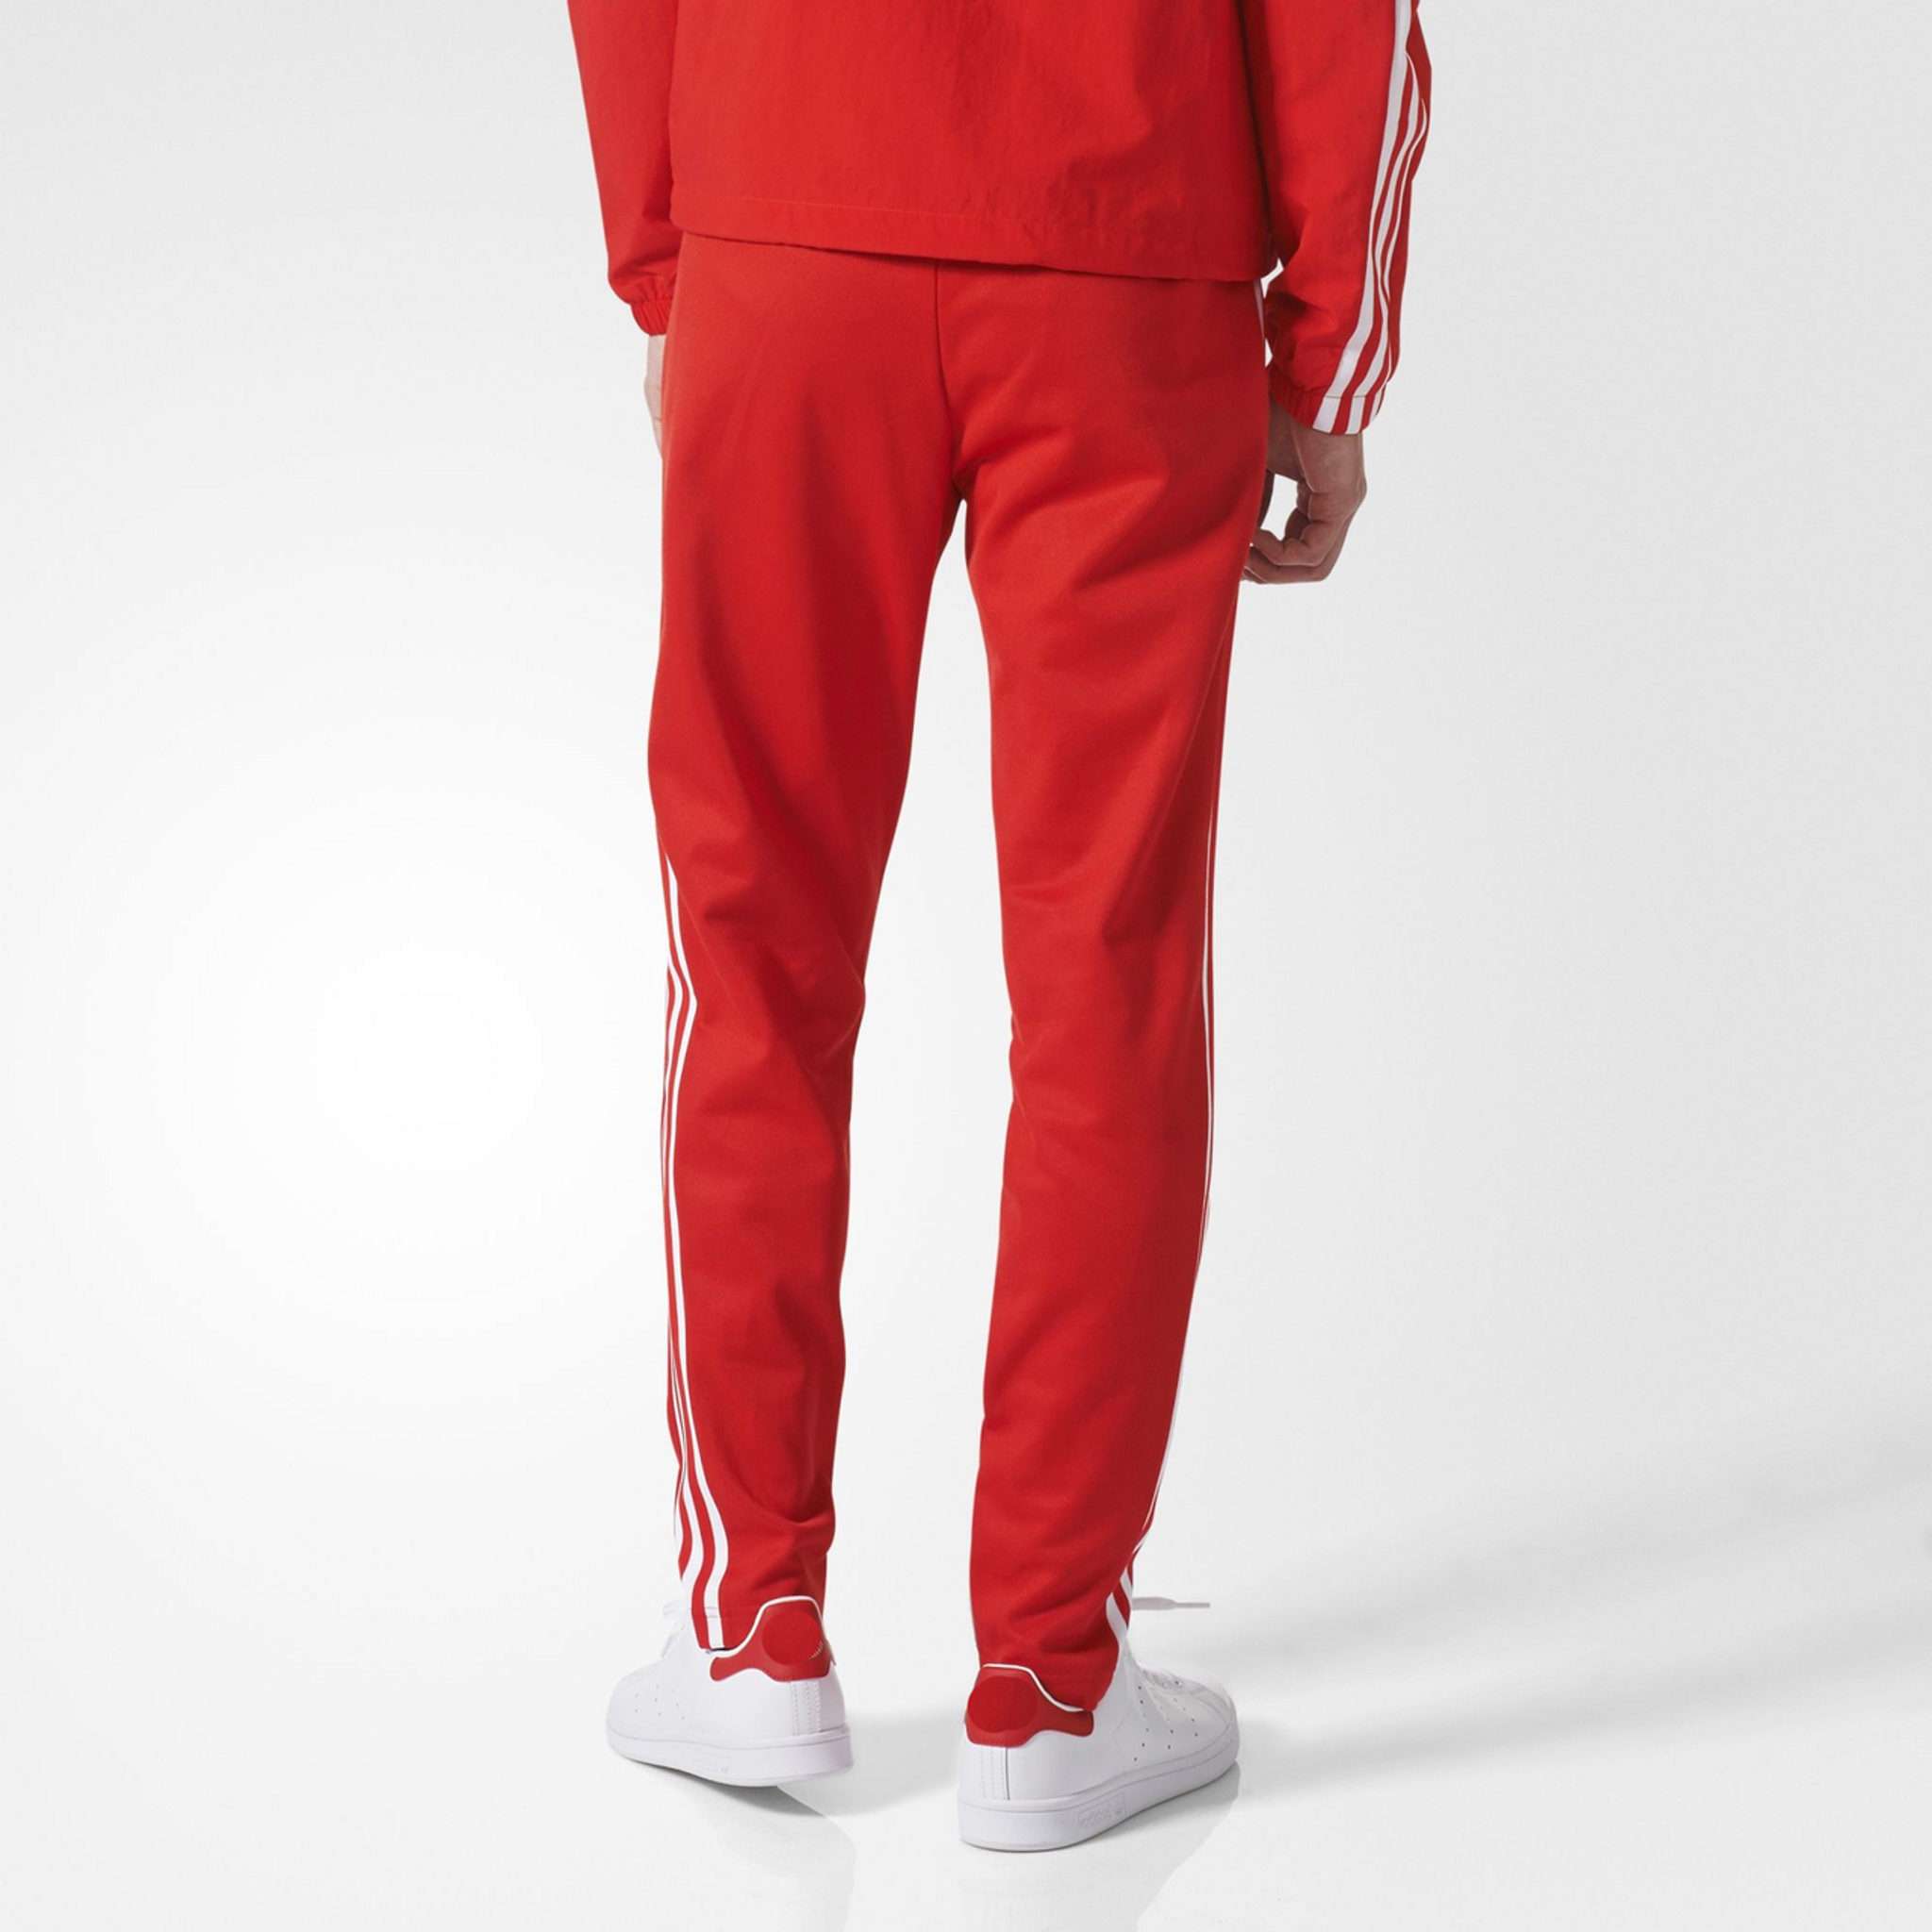 Fifth Avenue Men's Limited Edition Dri-Fit Tri Stripe Track Pants - Red and White